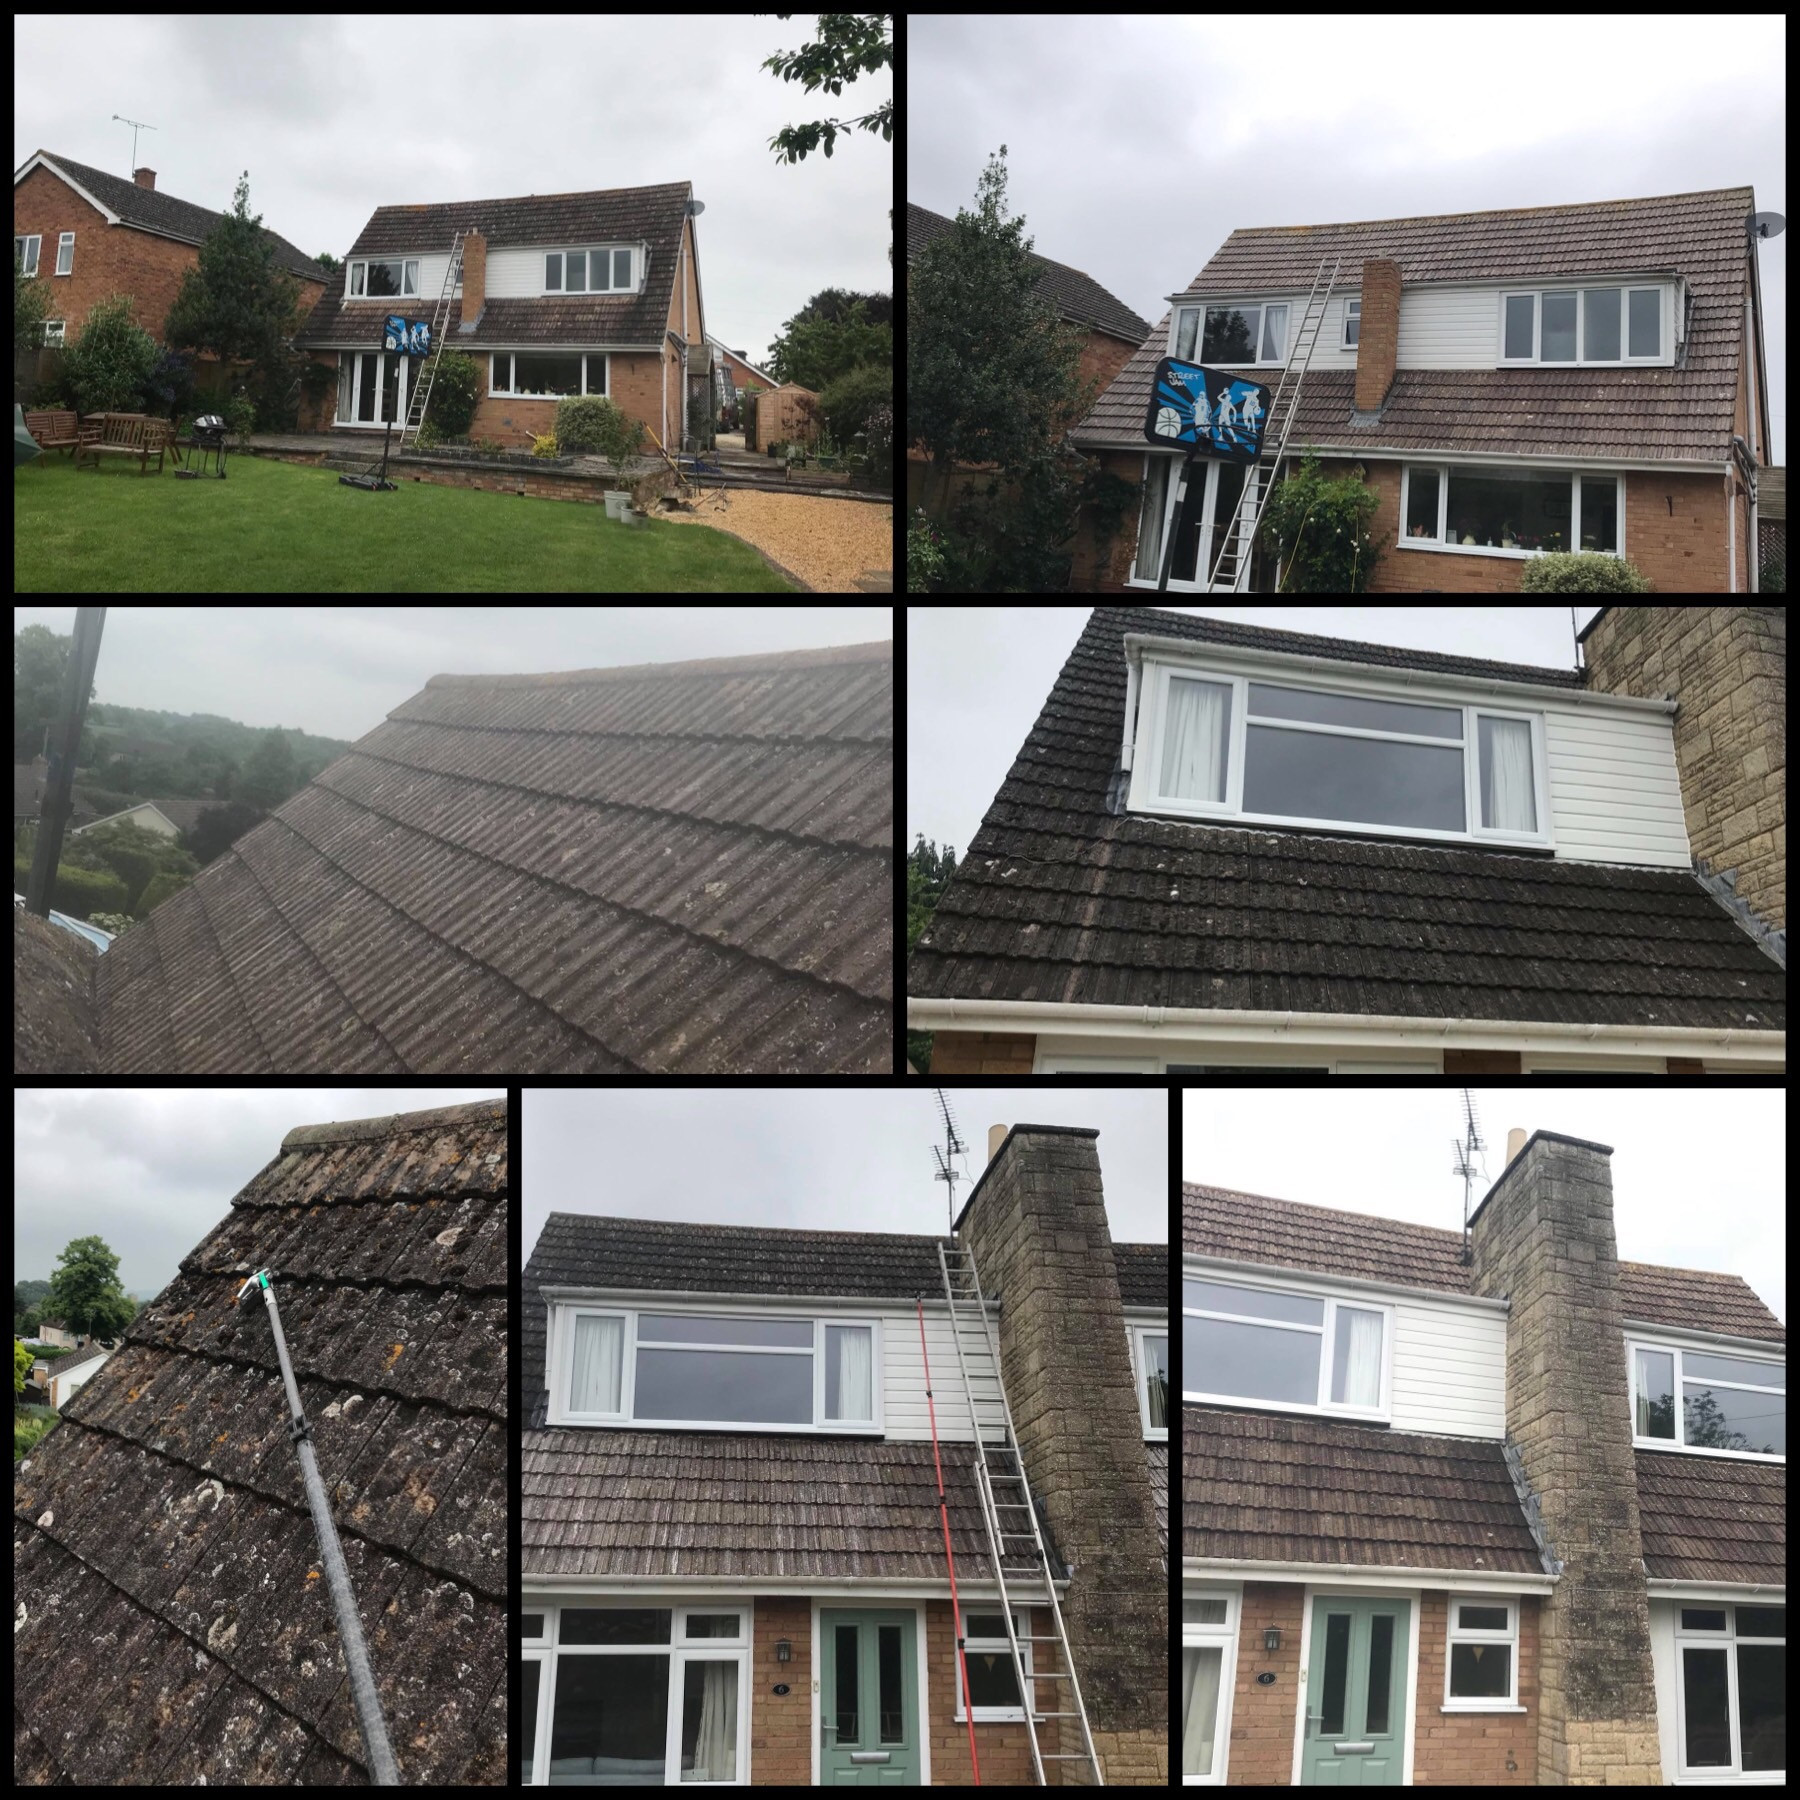 ROOF CLEANING AND SOFTWASHING MOSS REMOVAL FROM ROOFS ACROSS OXFORDSHIRE,NORTHAMPTONSHIRE,WARWICKSHIRE,BIRMINGHAM,LONDON,BANBURY ROOF CLEANING ,ROOF CLEANING IN BANBURY,OXFORD ROOF CLEANING ,ROOF CLEANERS IN OXFORD,NORTHAMPTON ROOF CLEANING ,ROOF CLEANING IN NORTHAMPTON,BRACKLEY ROOF CLEANING ,ROOF CLEANERS IN BRACKLEY